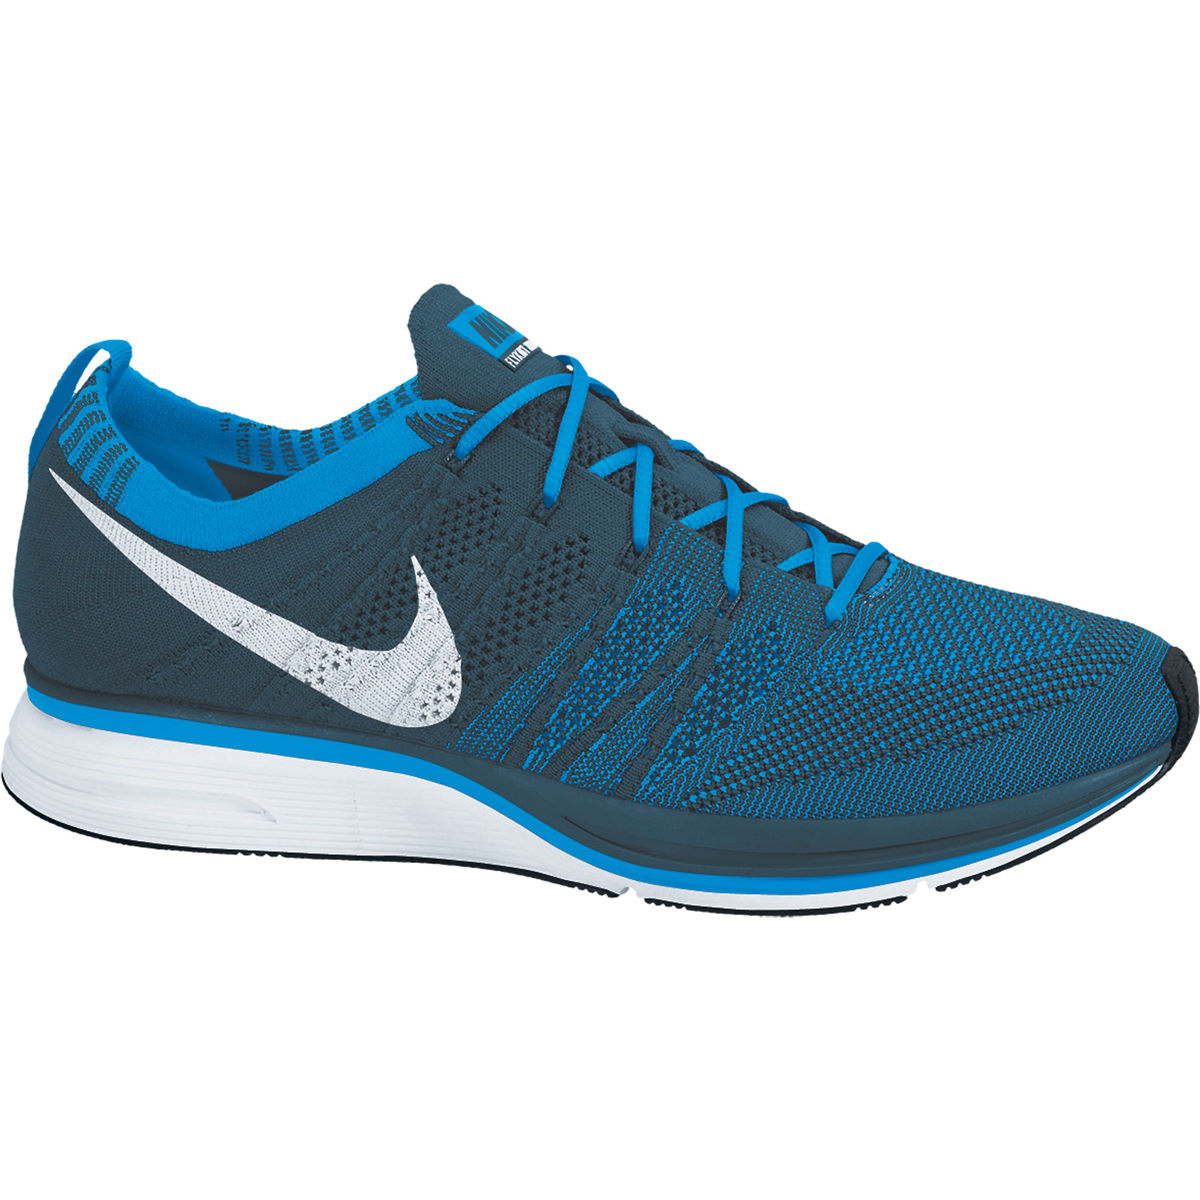 nike the biggest training shoe company essay Founded as an importer of japanese shoes, nike, inc (nike) a training club for olympic hopefuls in track and field nike allied itself with nissho iwai, the sixth largest japa nese trading company, to form nike-japan corporation.